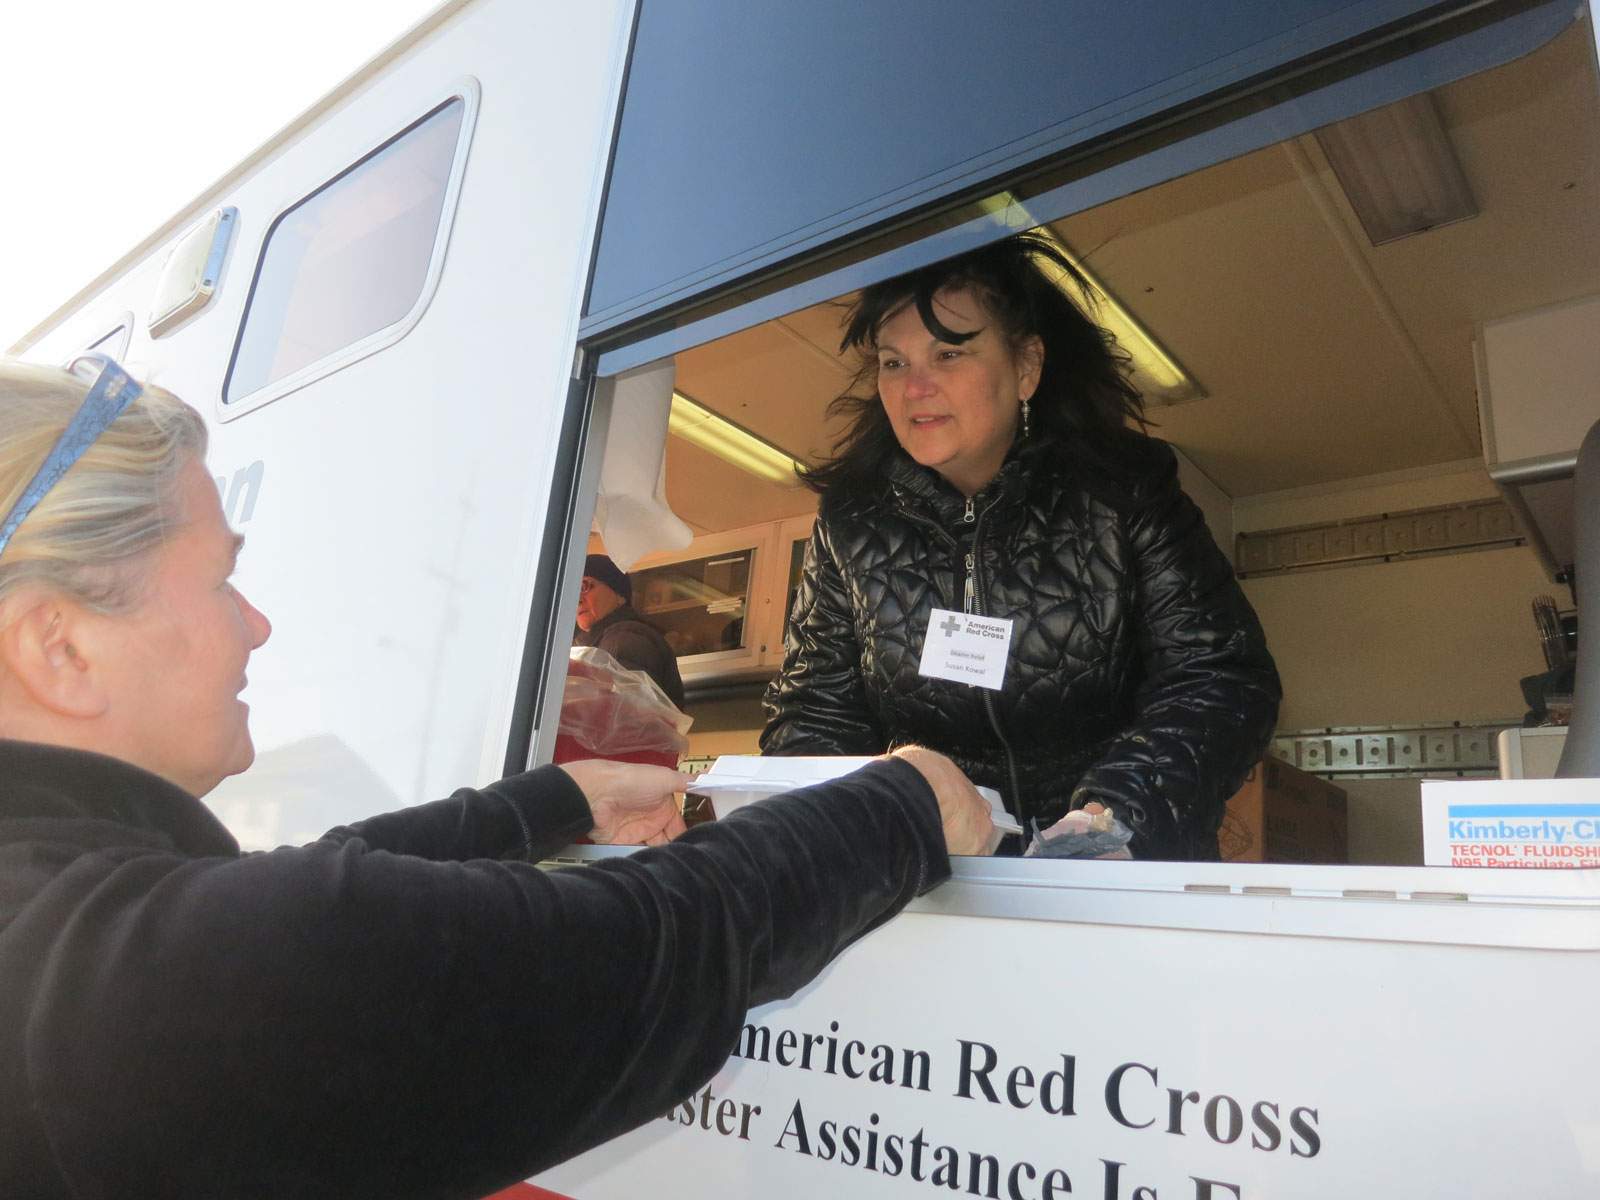 Susan Kowal serving hot turkey, string beans, mashed potatoes with gravy, apple sauce and a snack pack of goodies and water from the window in the side of the Red Cross truck known as an ERV (Emergency Response Vehicle). Families were even given a Thanksgiving table cloth but the best gift is sometimes just compassion or chance to talk about each situation.